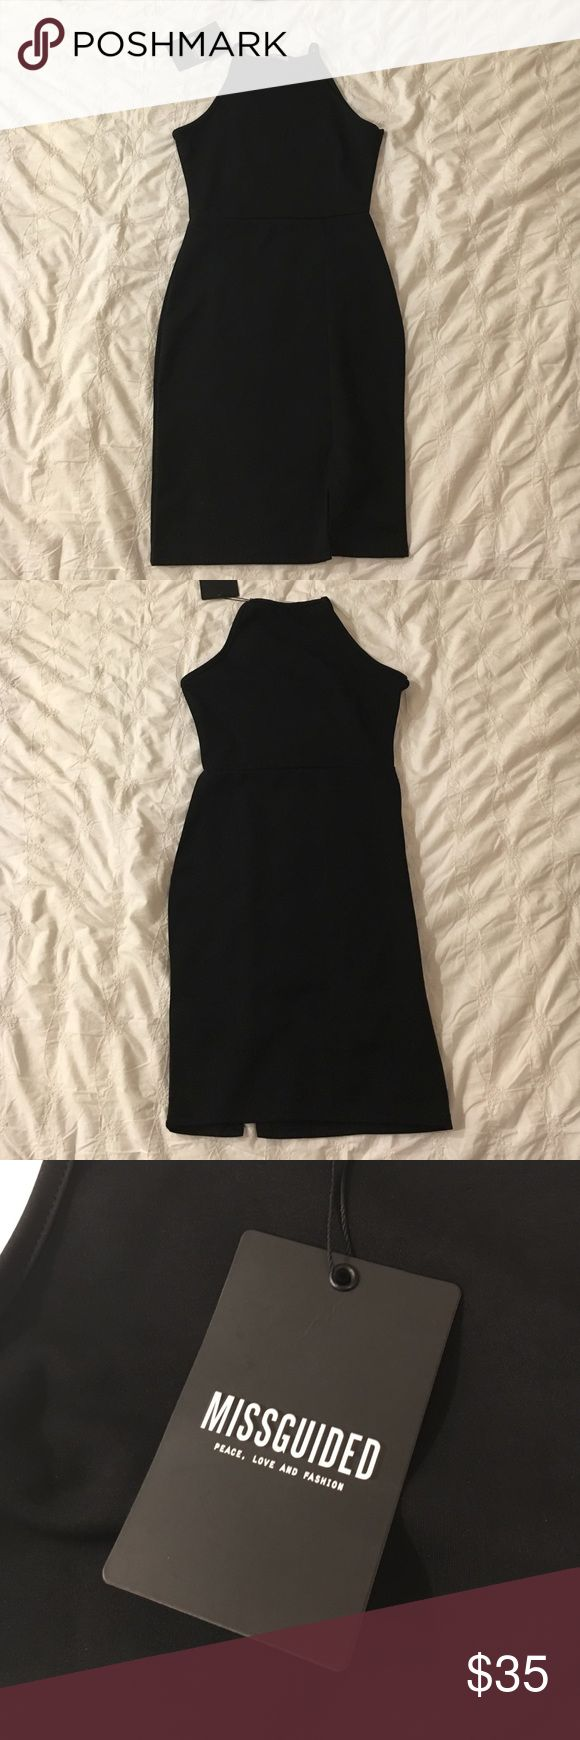 Black Cocktail Misguided Dress Brand New. Never worn. It's perfect and I love it, it just was too small for me. Great detail around waist line and small slit at the bottom Misguided Dresses